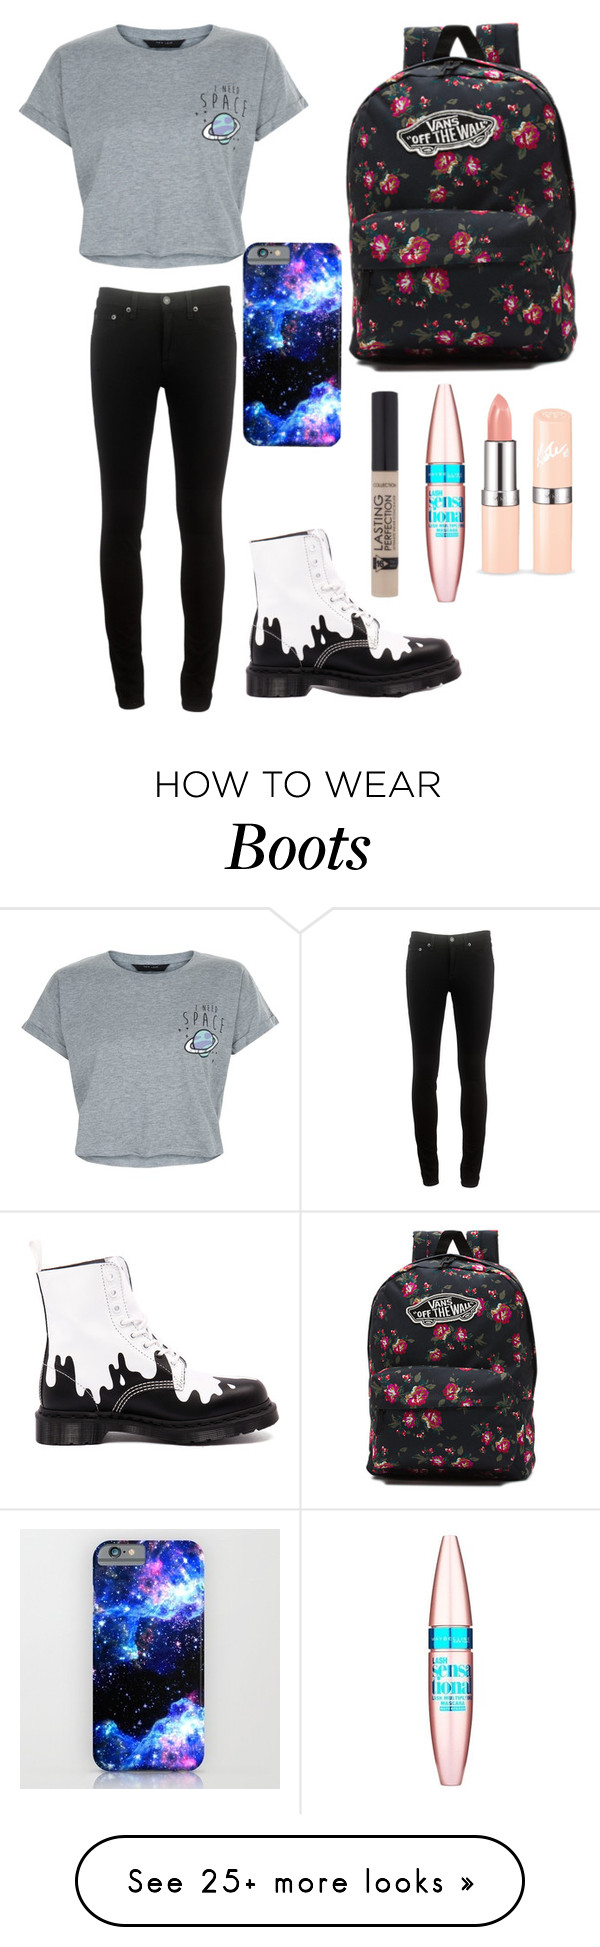 """Untitled #213"" by pandapop263 on Polyvore featuring Vans, rag & bone, New Look, Dr. Martens and Maybelline"